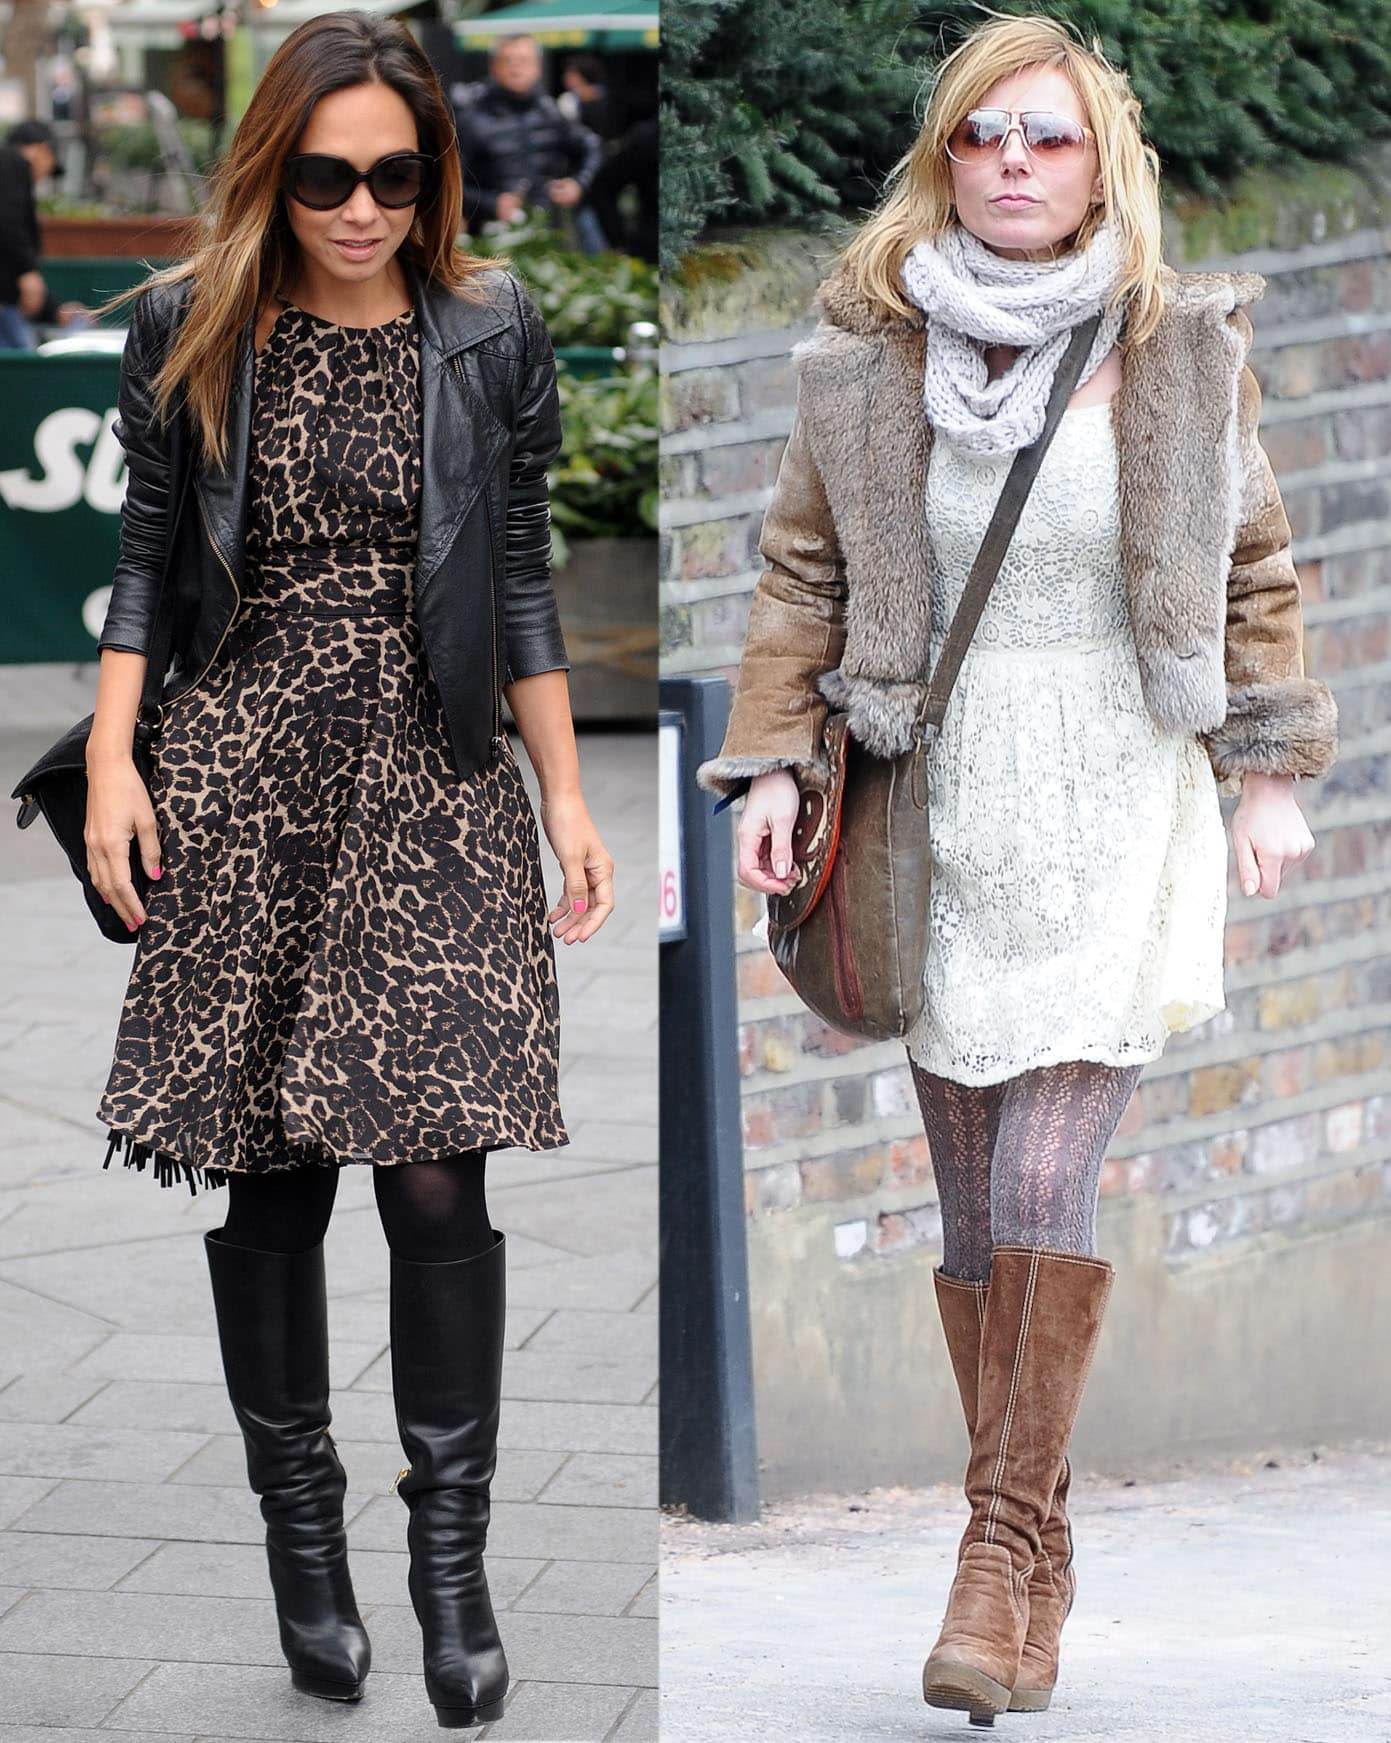 Geri Halliwell and Myleene Klass style their knee-high boots with tights and socks